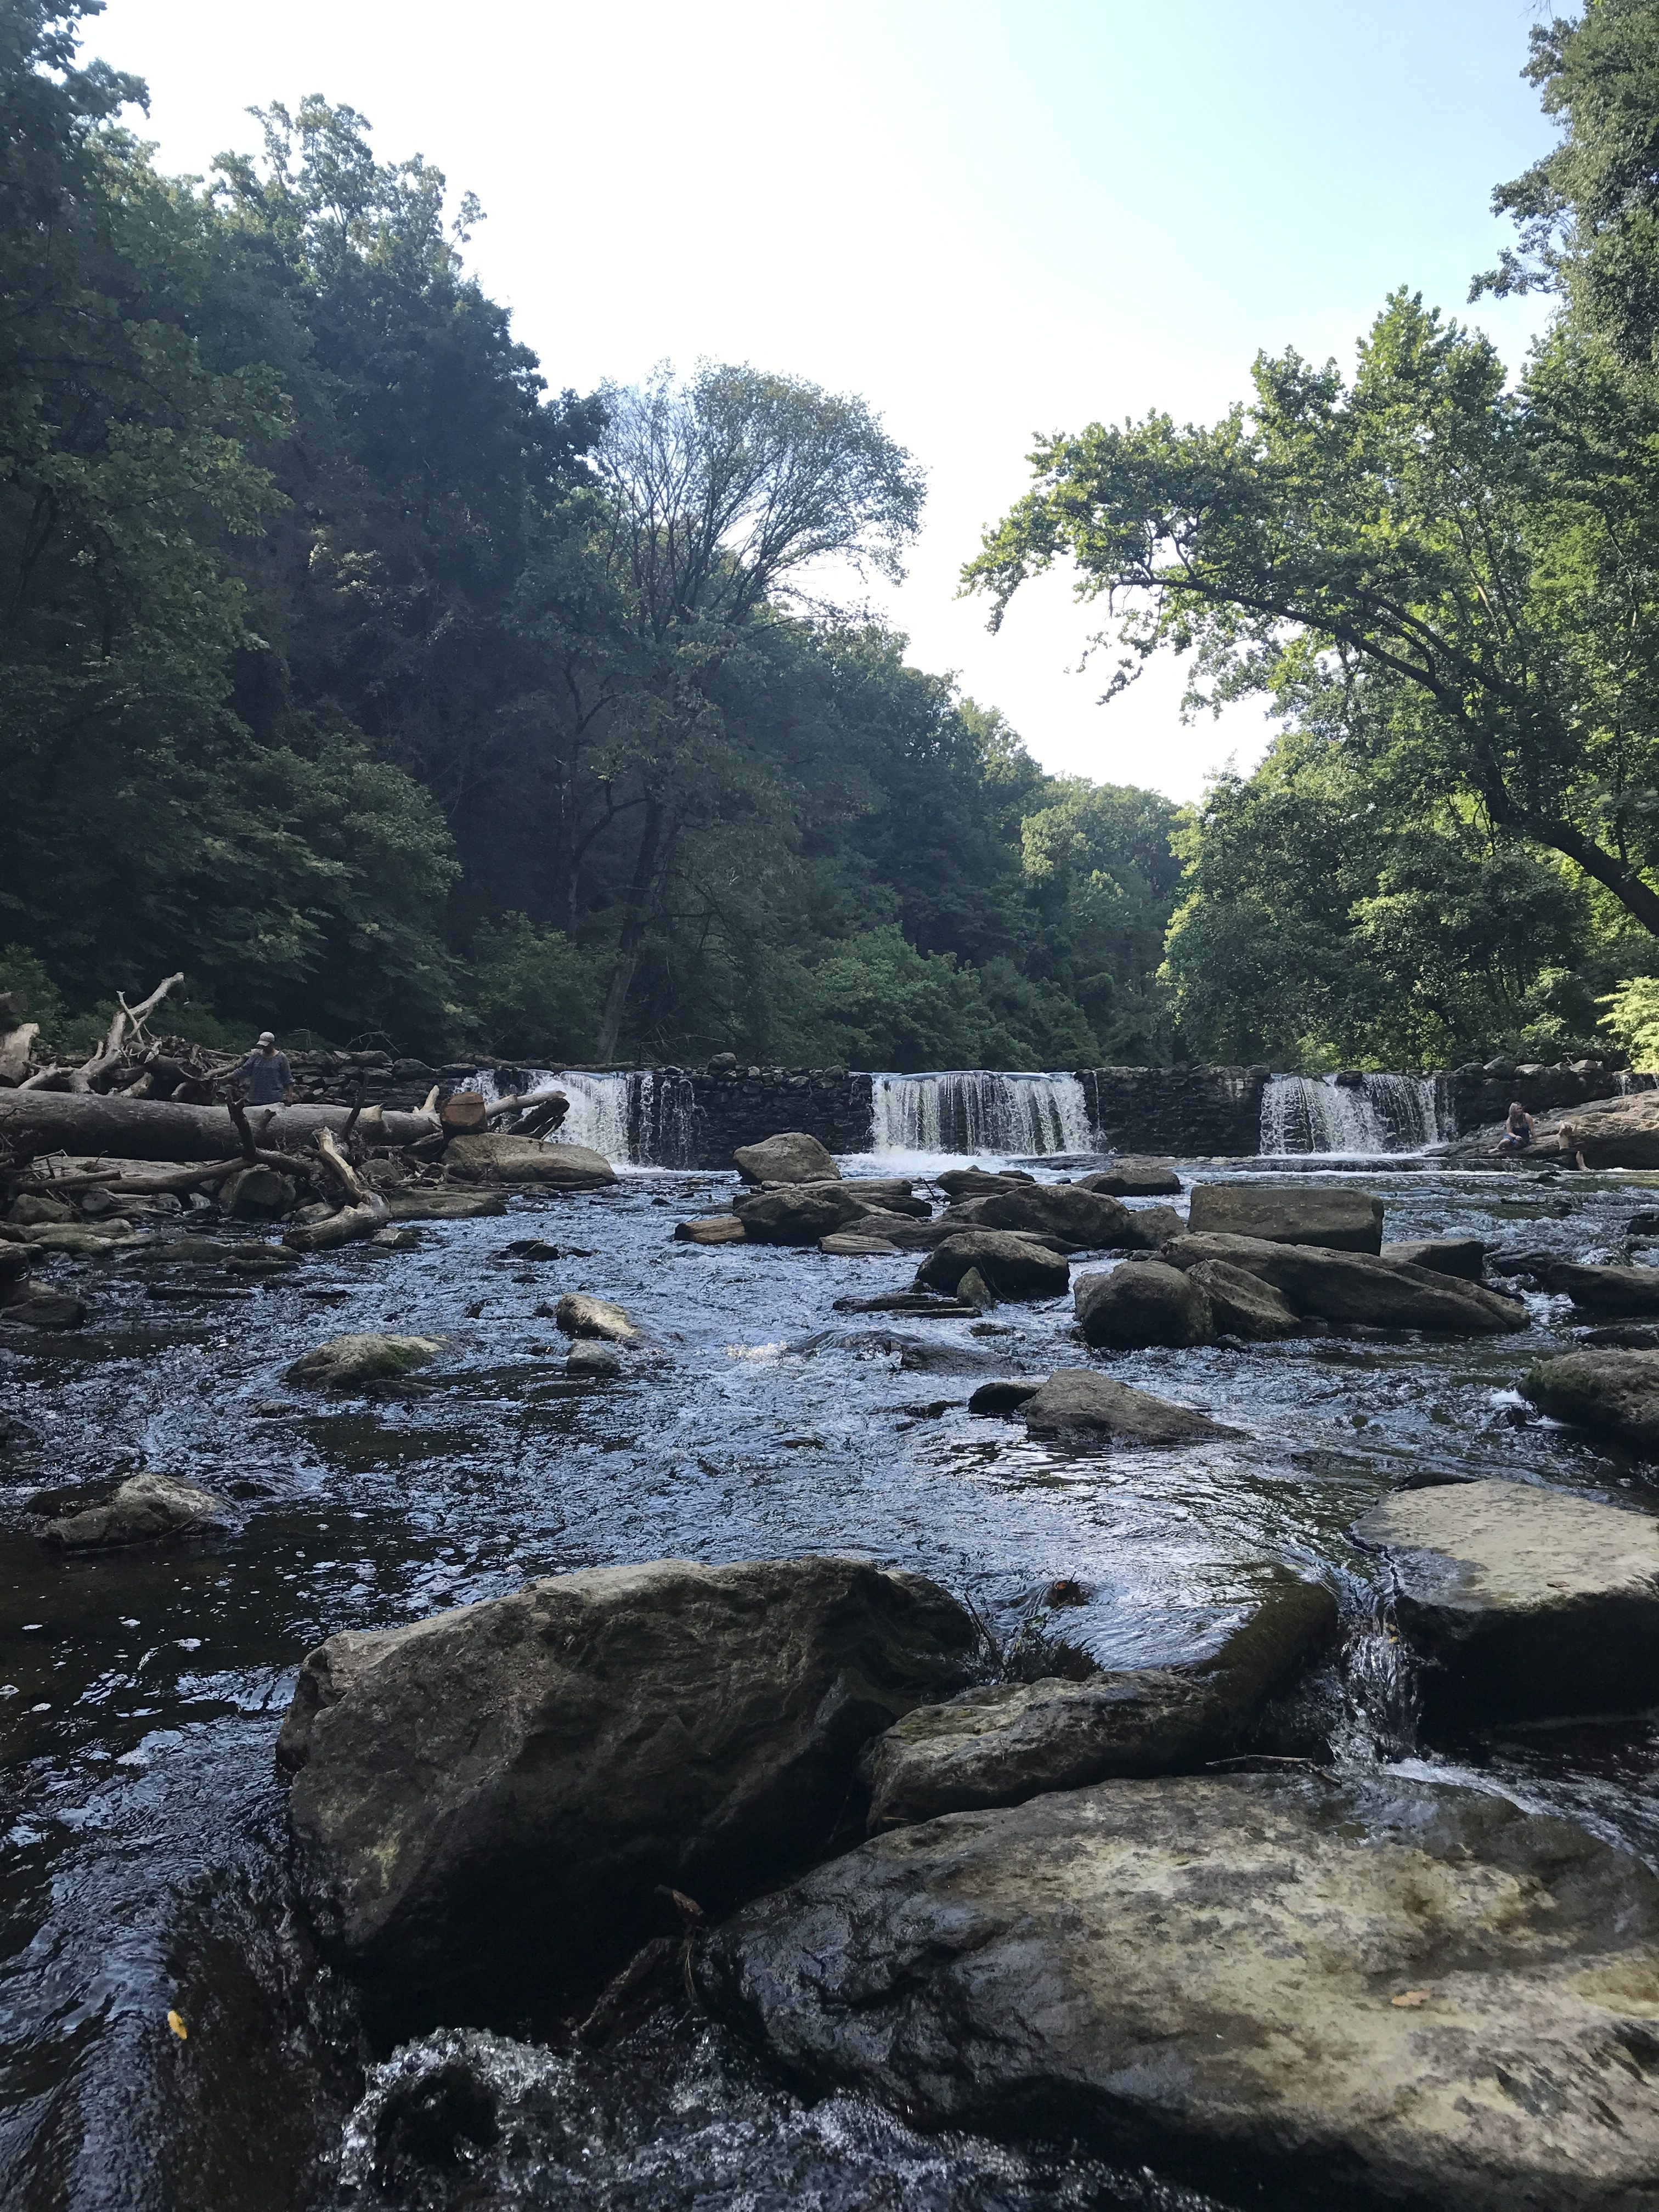 The Wissahickon Valley: A Visitors Guide